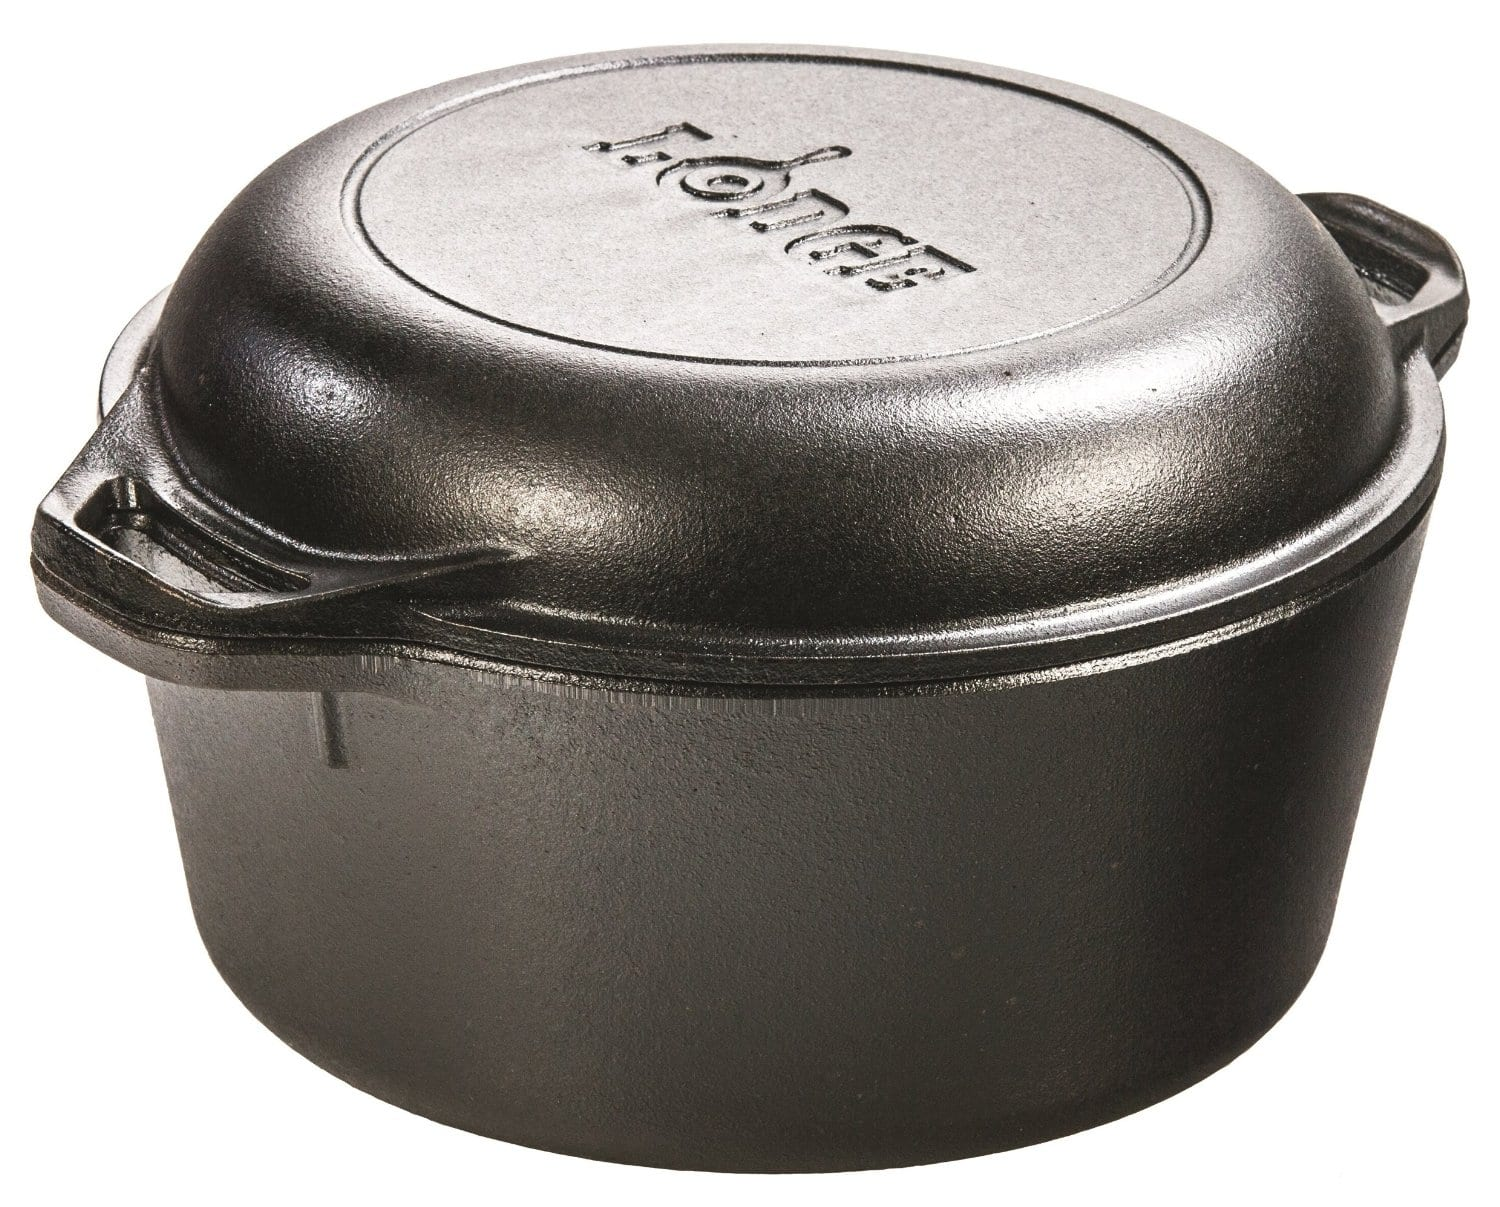 Lodge 5-Quart Double Dutch Oven w/ Skillet Cover  $26.75 + Free Store Pick-Up